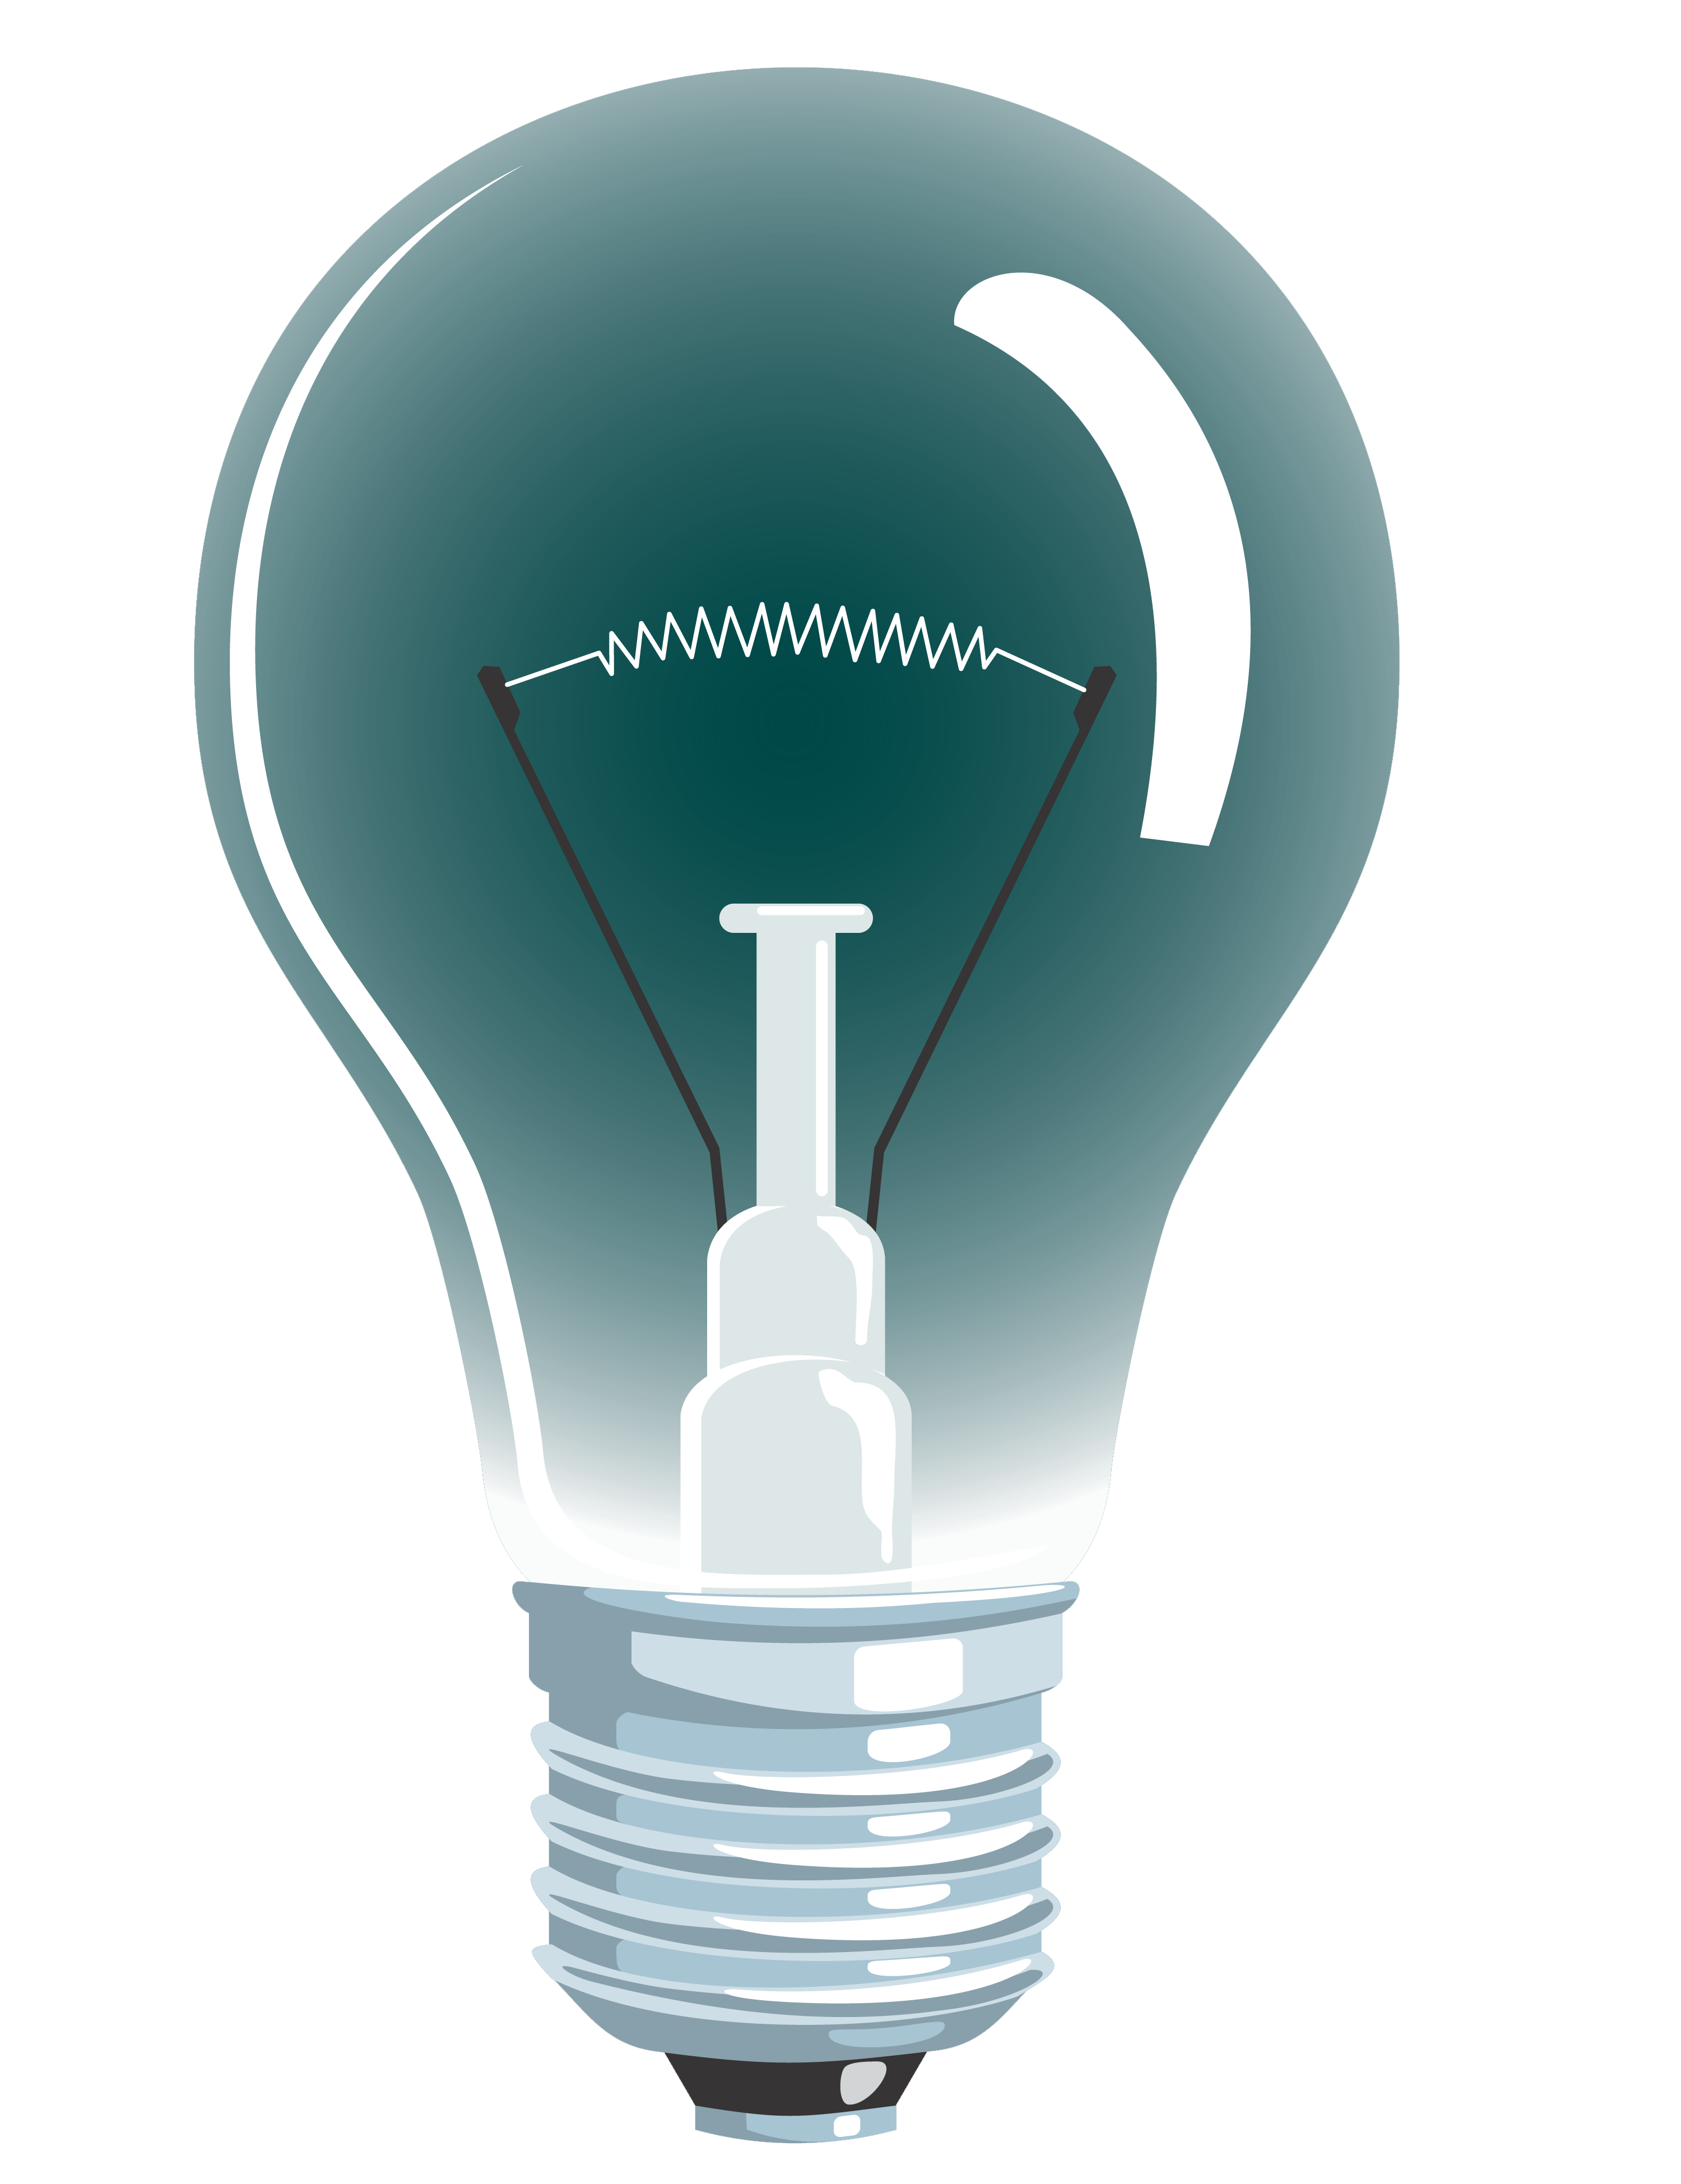 Light Bulb Transparent Picture 23 PNG Images